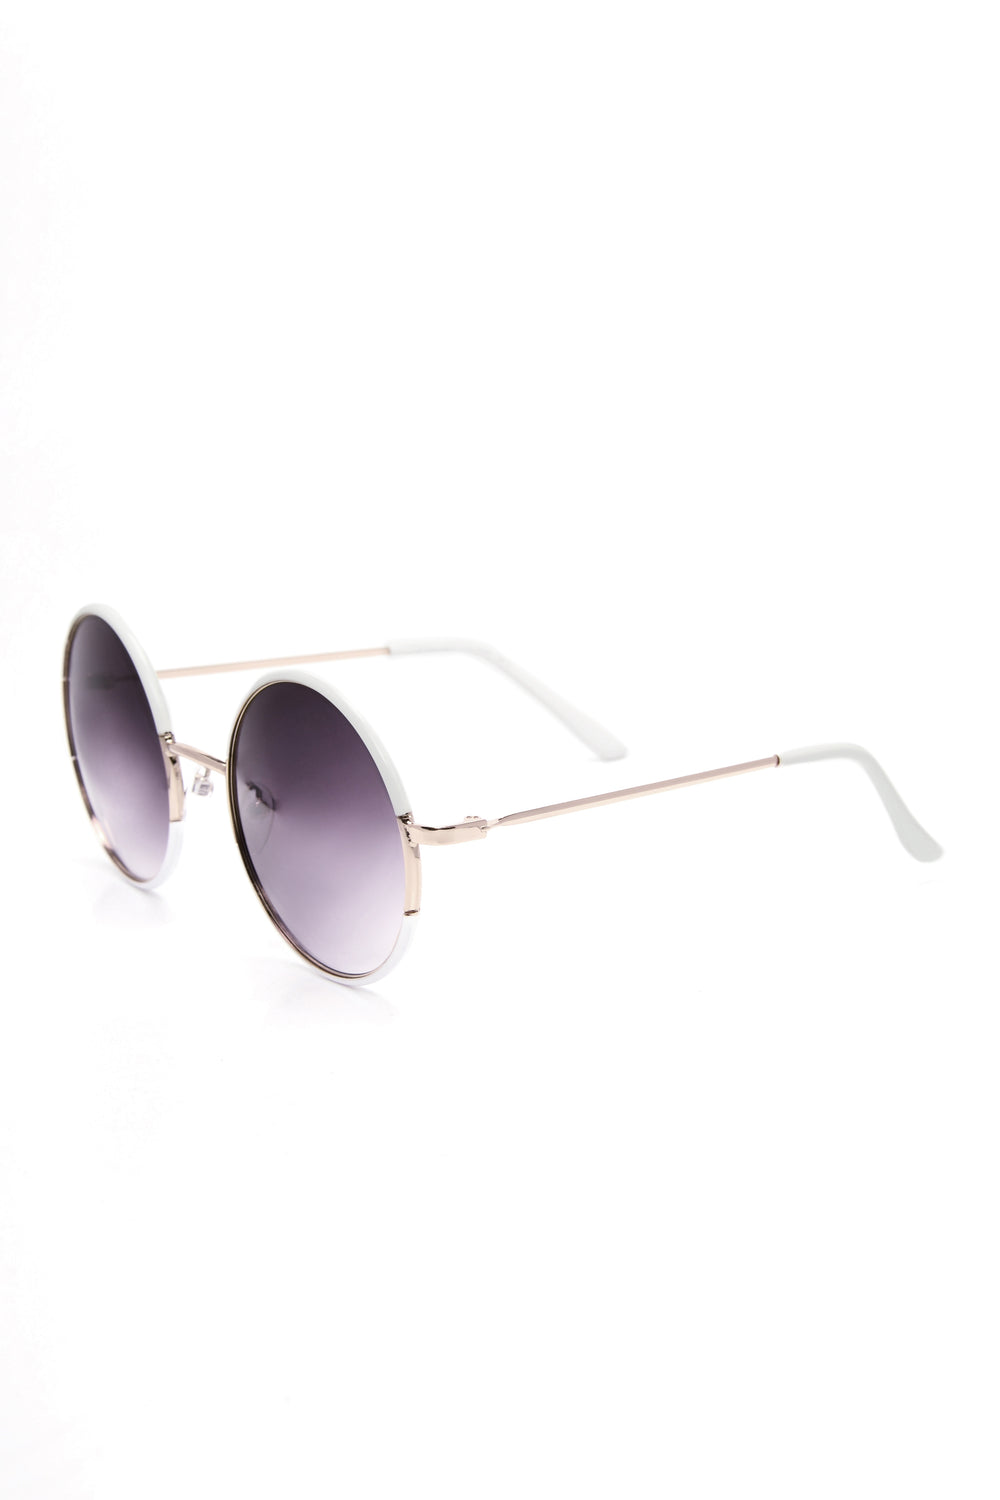 Sahara Round Sunglasses - White